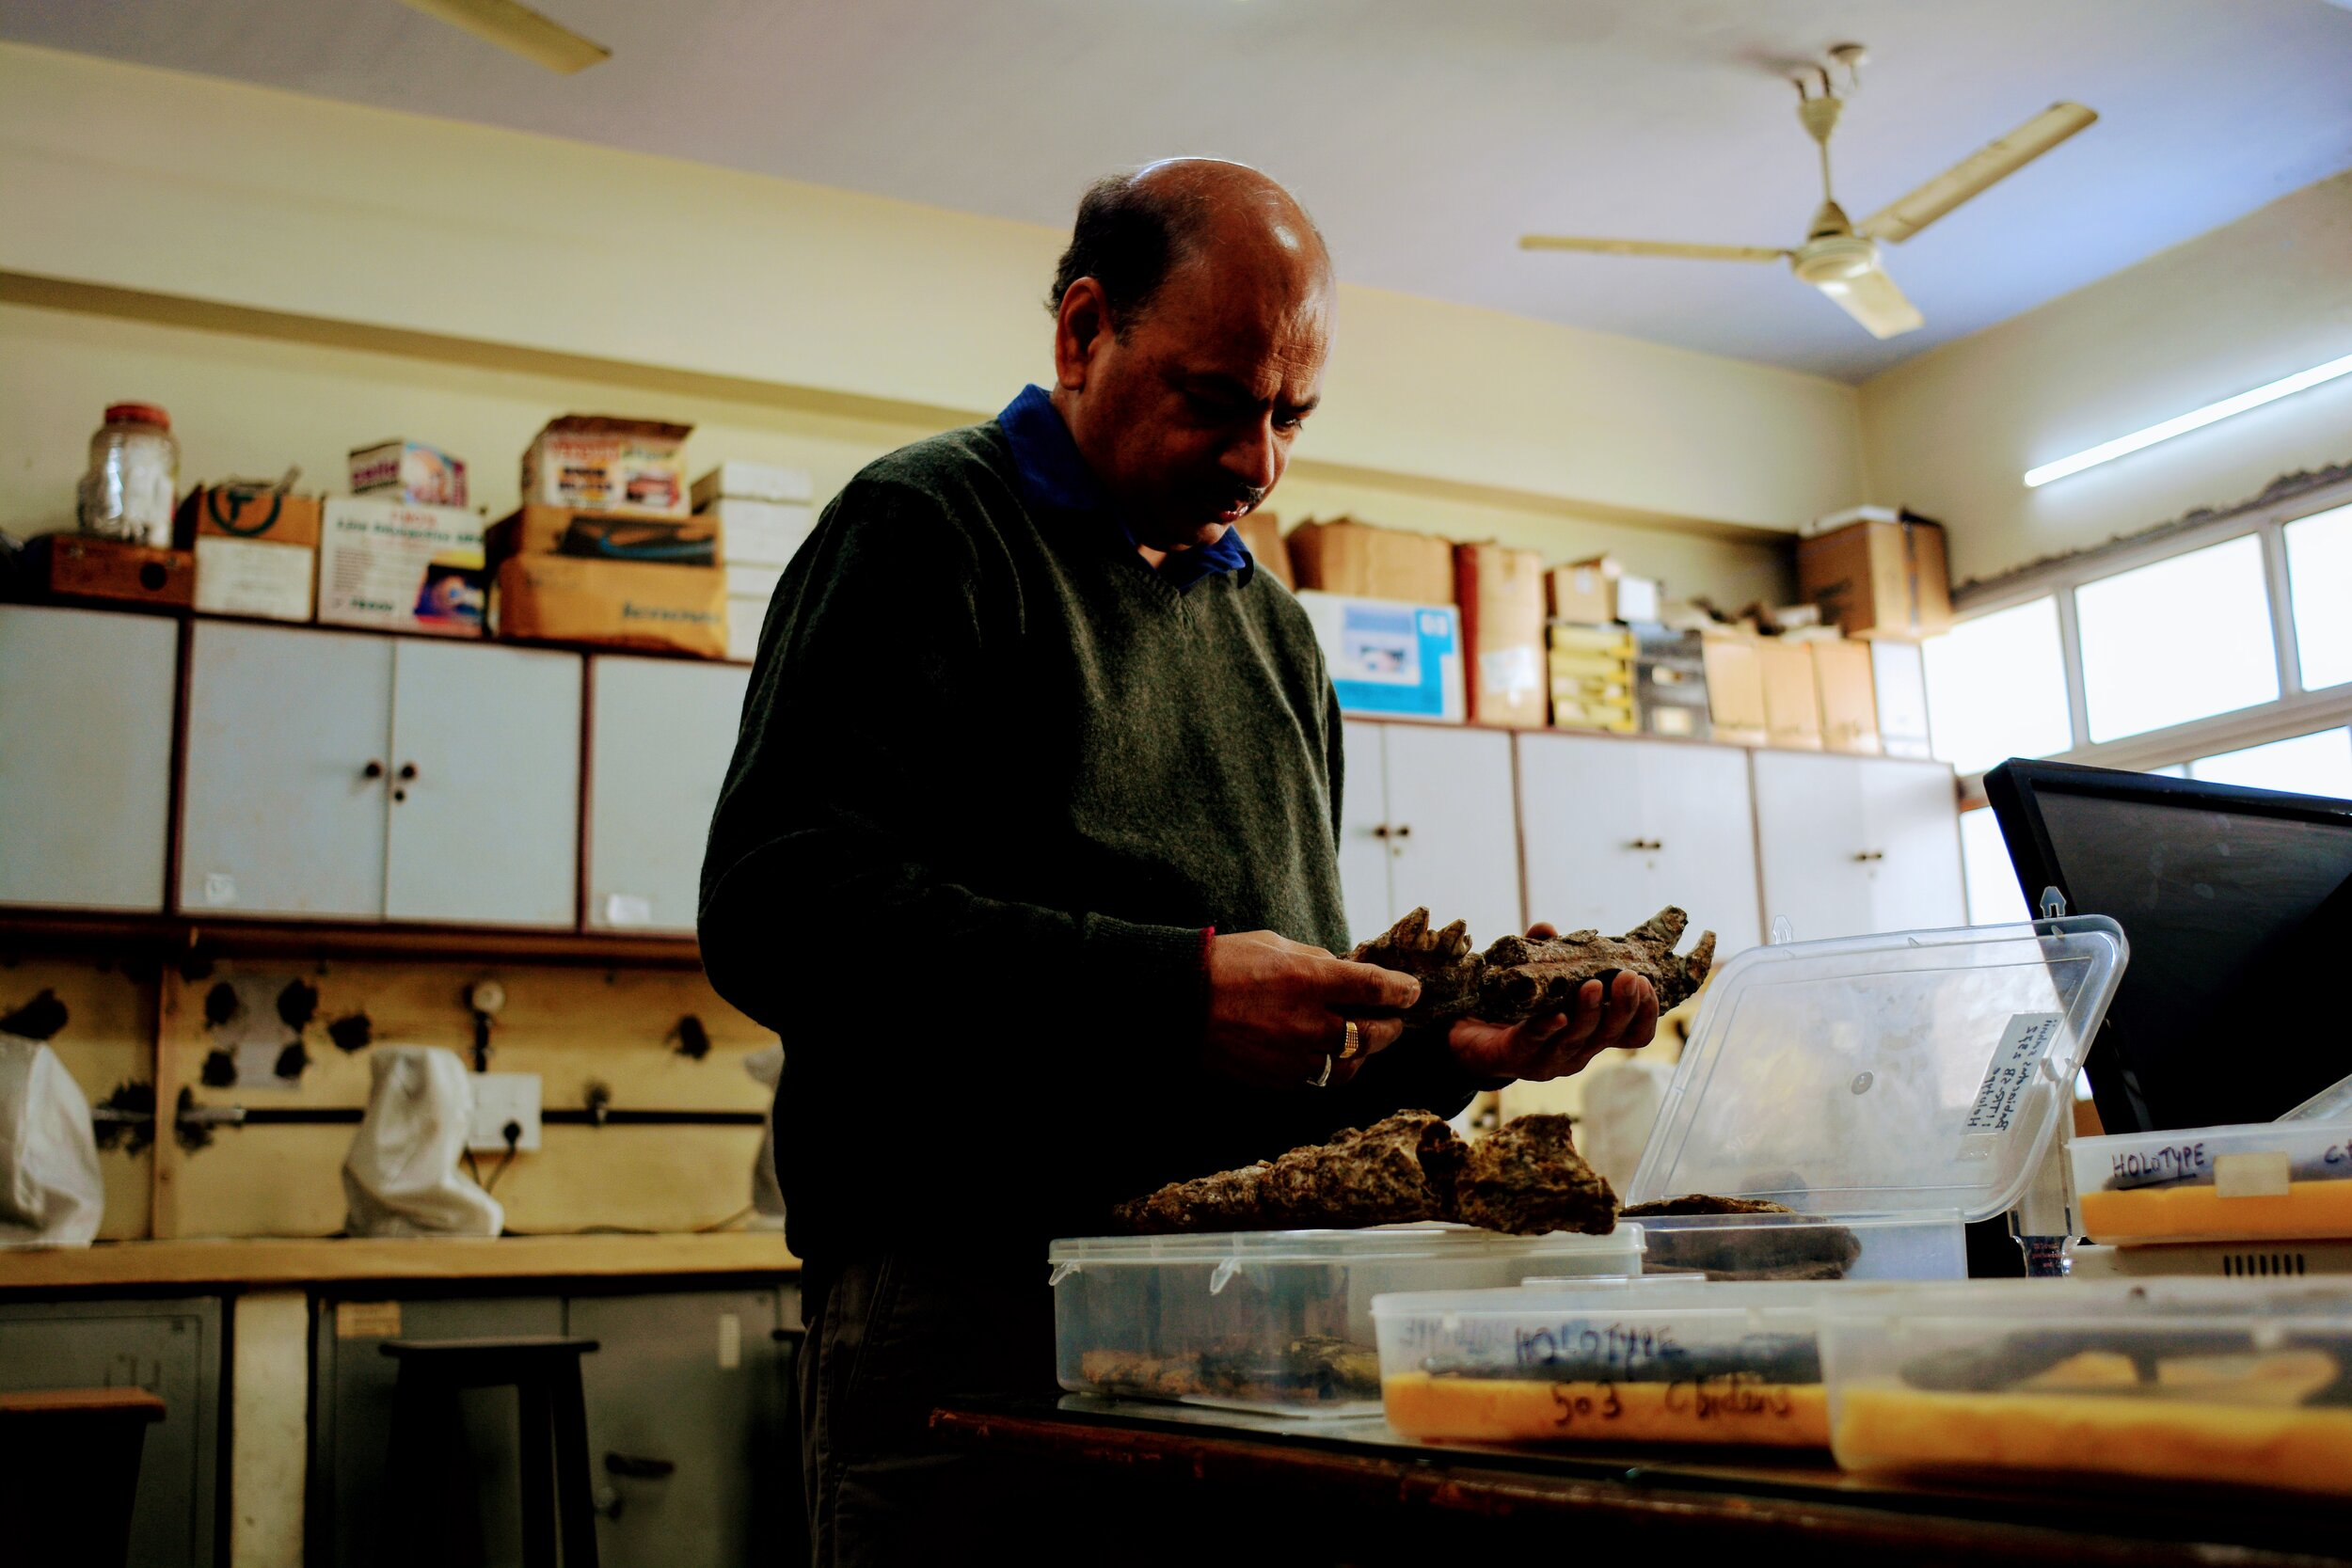 Sunil Bajpai in his lab at IIT Roorkee. Many of these fossils were found in the desert of Kutch.